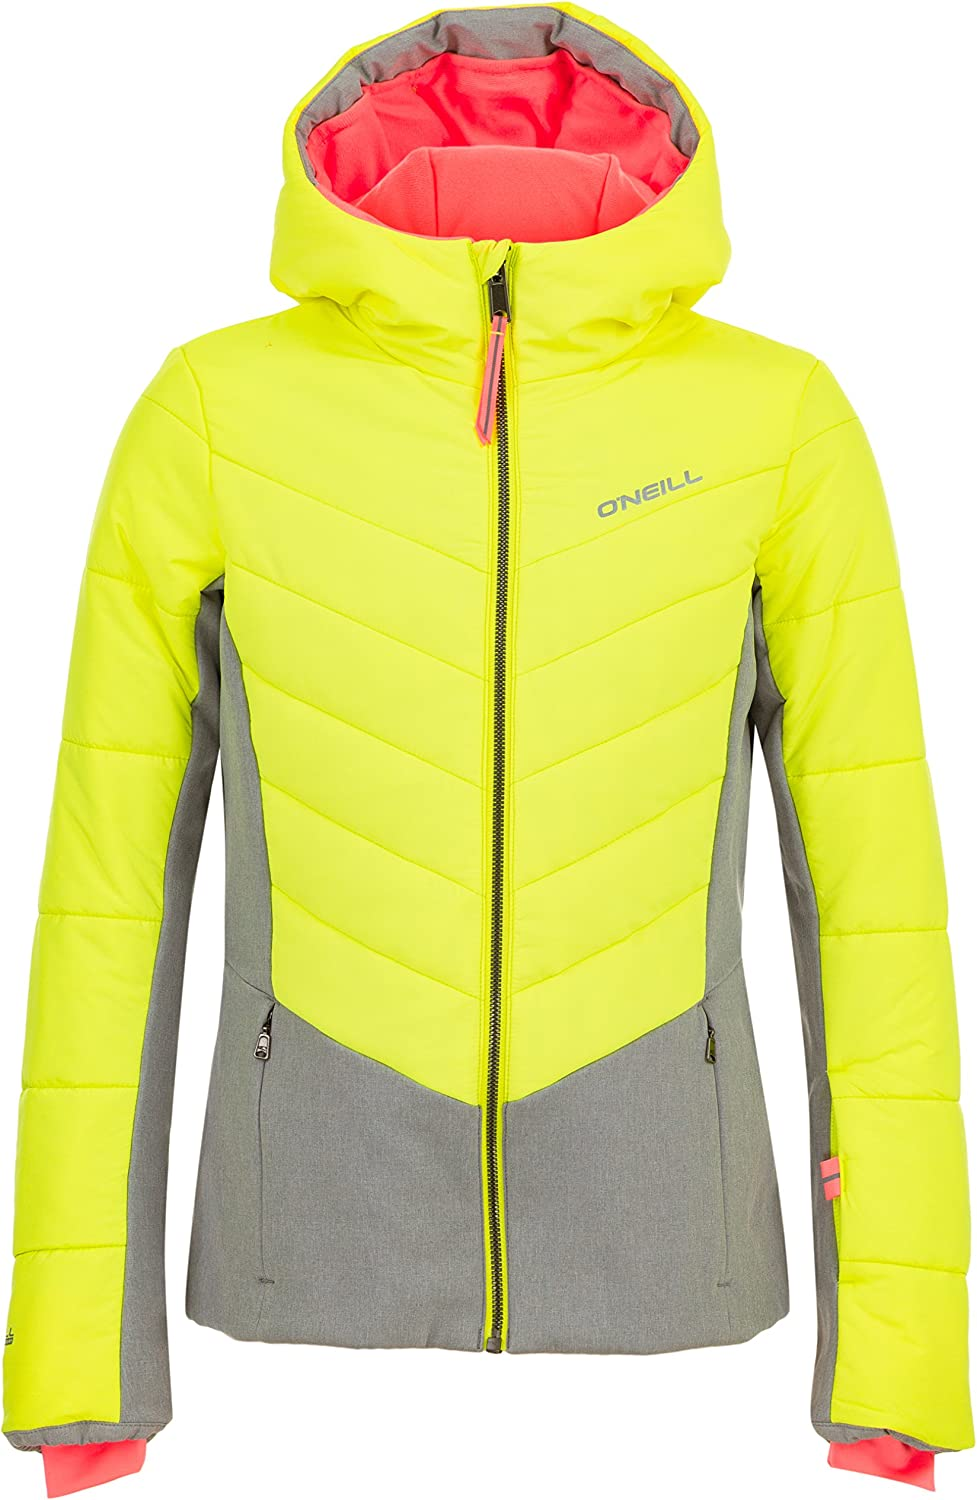 O'NEILL Girls Max 62% OFF Cheap mail order shopping Jacket Virtue